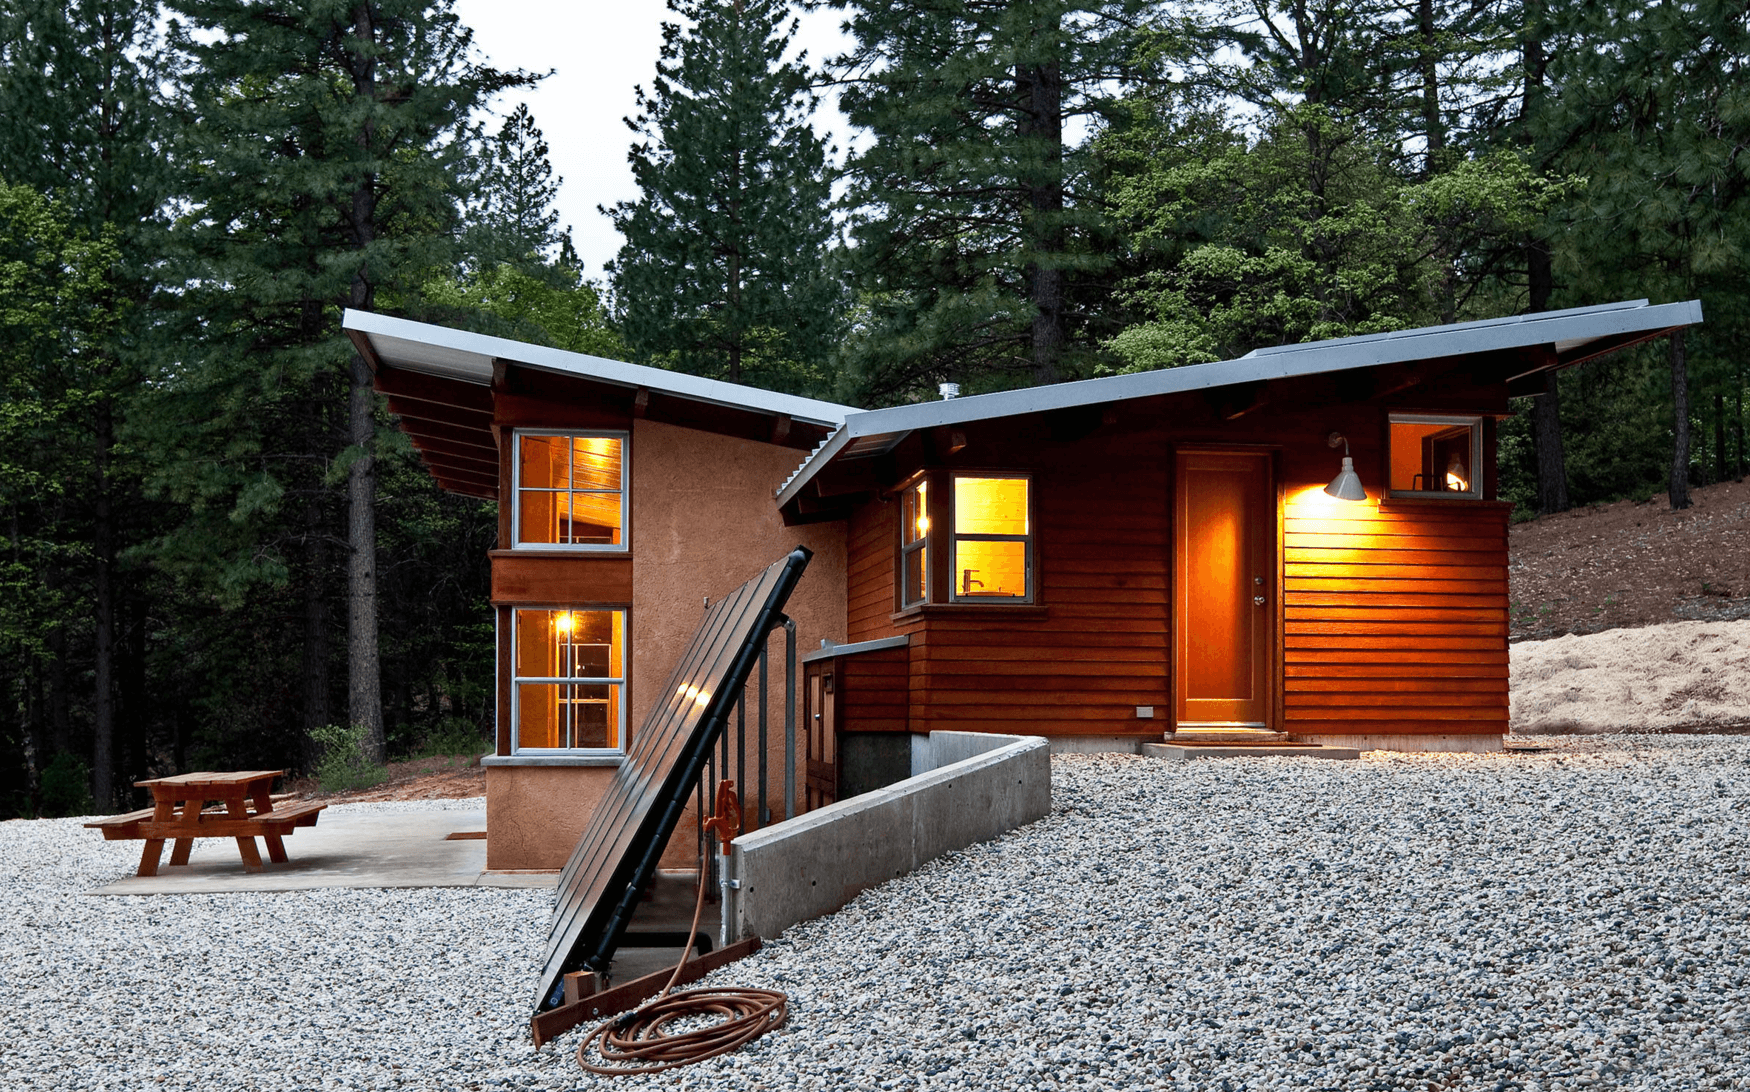 An edgy, cabin-inspired home in the woods. Image Source: Arkin Tilt Architects